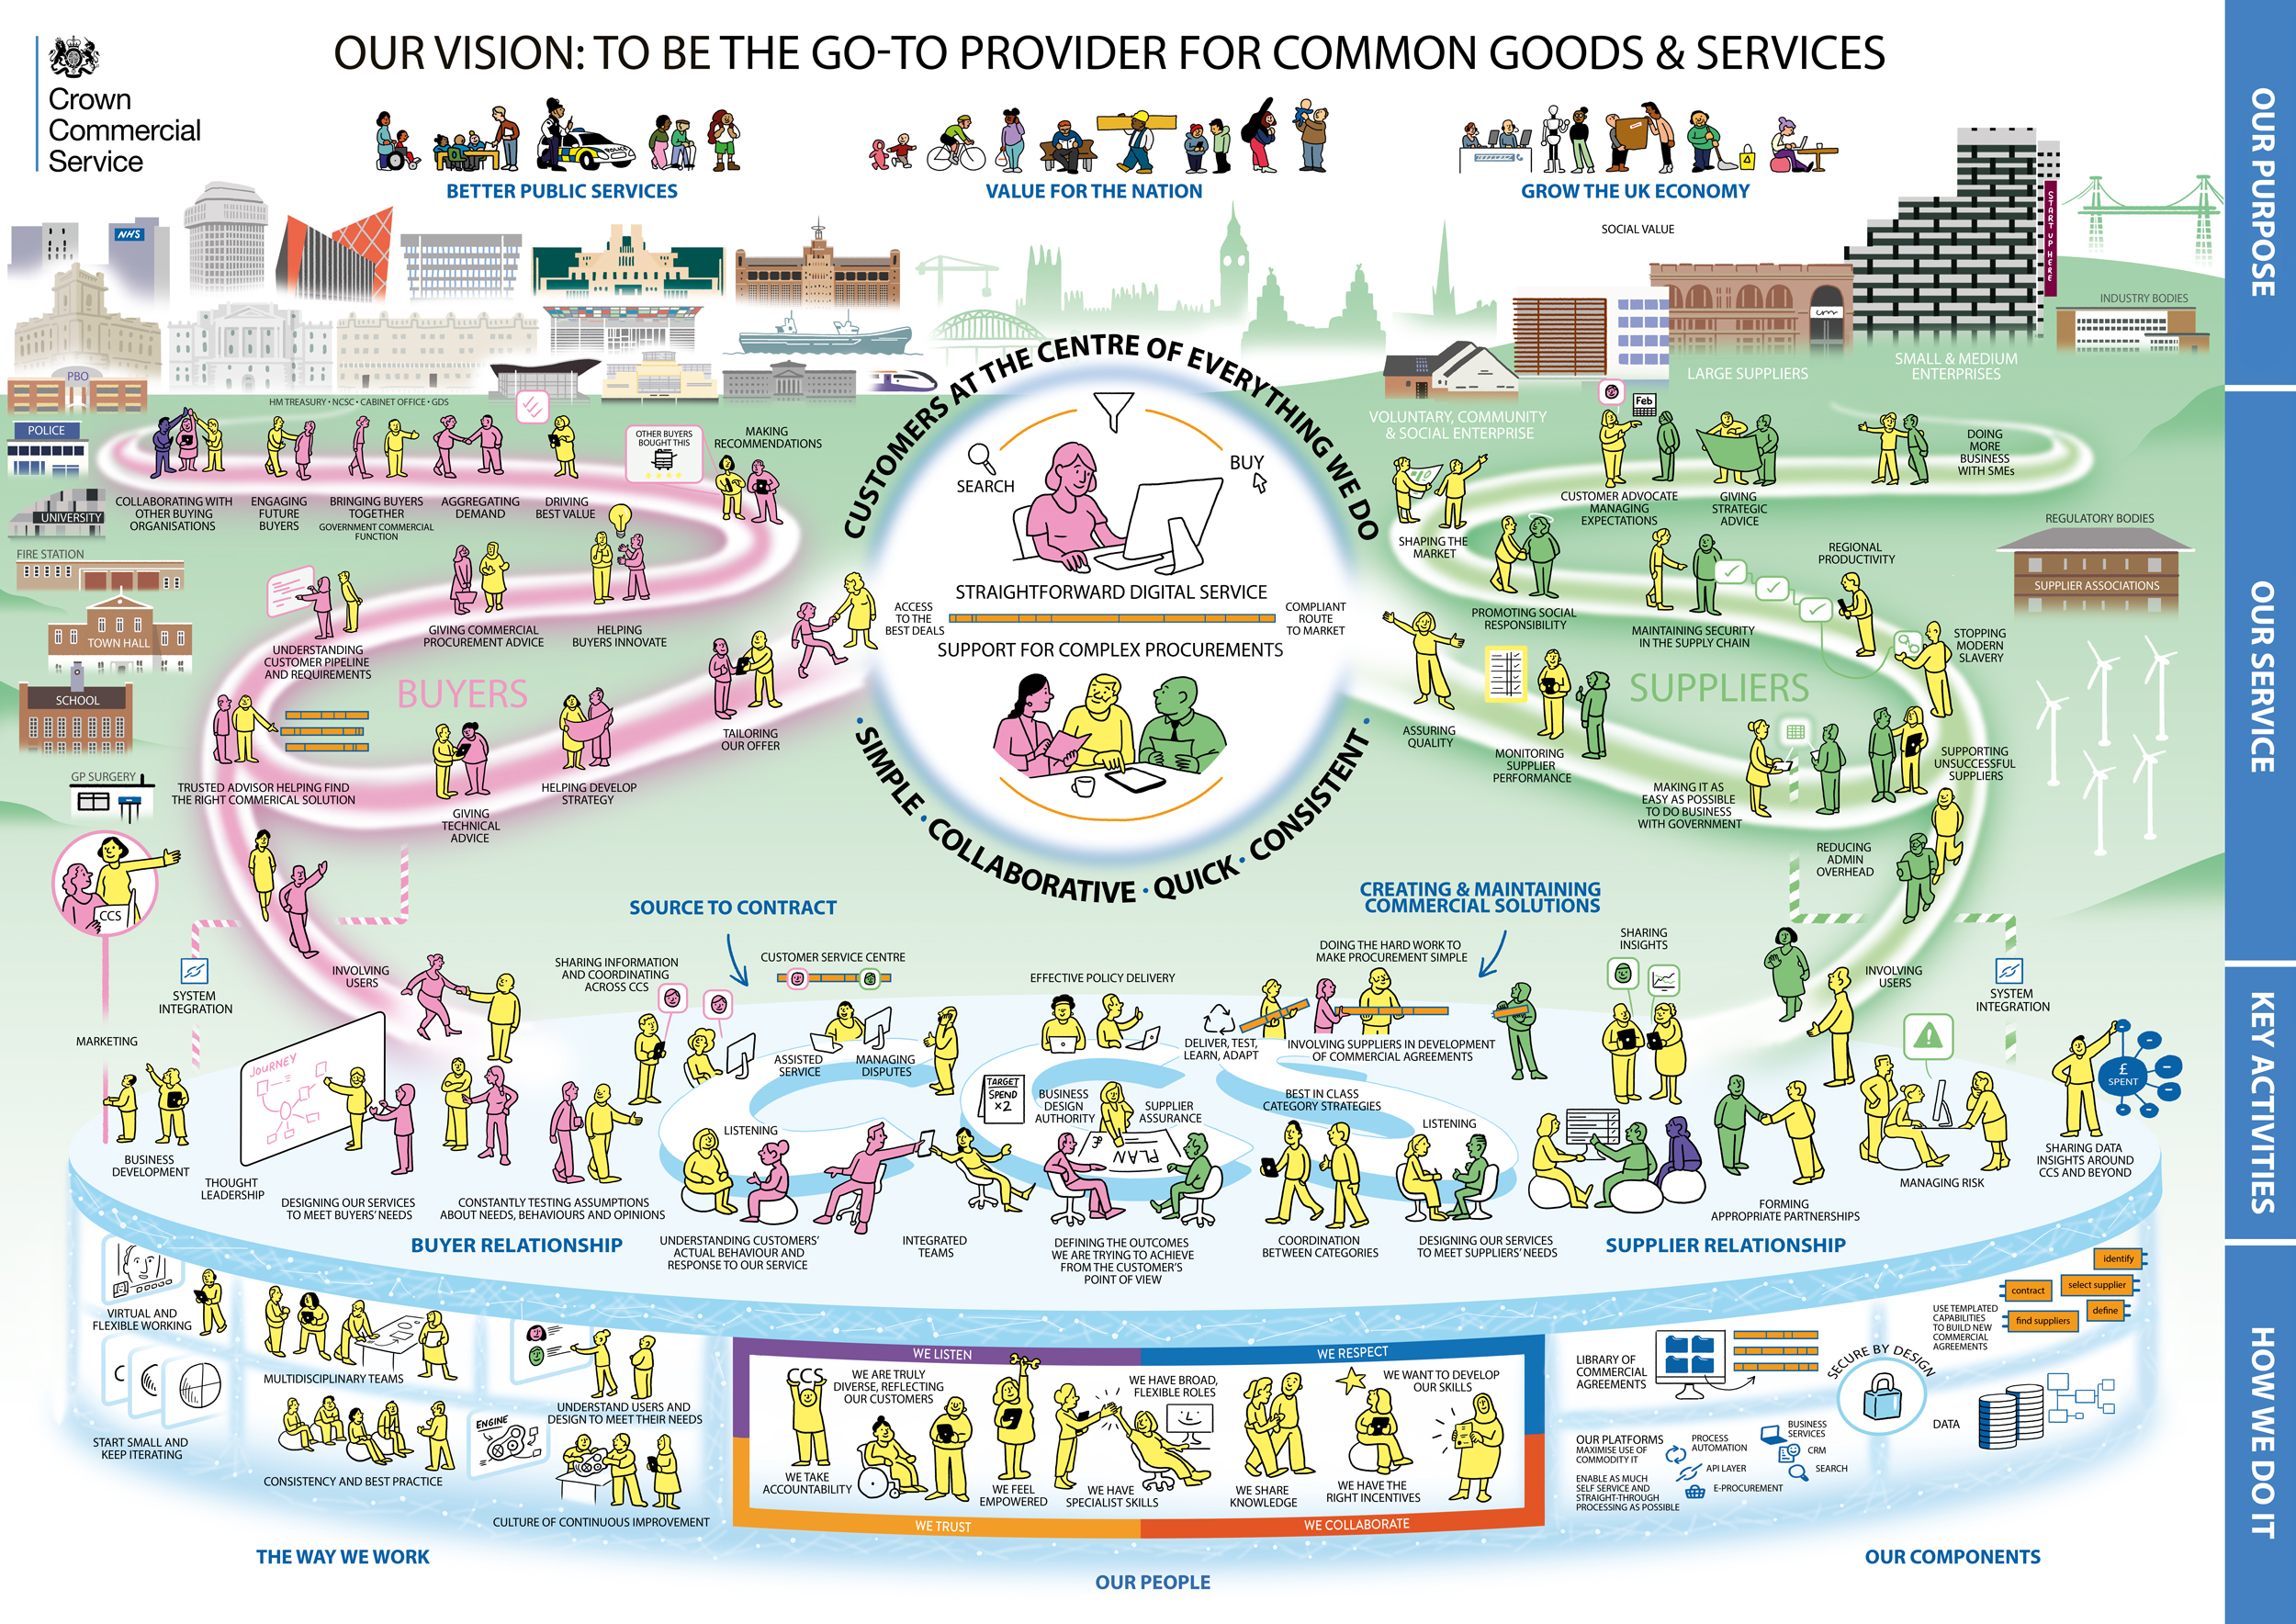 "A detailed cartoon, titled ""Our vision: to be the go-to provider for common goods & services."" In the centre is a drawing of people surrounded by the words ""customers at the centre of everything we do"" and ""simple - collaborative - quick - consistent."" To the left is a series of illustrations to depict buyers, including some with words describing them saying ""collaborating with other buying organisations"" ""making recommendations"" ""helping buyers innovate"" ""tailoring our offer"" and ""involving users"". To the right are pictures showing suppliers, including ones which say ""doing more business with SMEs"" ""shaping the market"" ""stopping modern slavery"" and ""making it as easy as possible to do business with government."" Along the bottom shows how CCS want to work to promote collaboration between buyers and suppliers, including drawings titled ""defining the outcomes we are trying to achieve from the customer's point of view"" ""doing the hard work to make procurement simple"" ""customer service centre"" and ""managing risk."" Underneath those sections is a series of drawings on ""Our people"" showing what it will be like to work in CCS, including ""virtual and flexible working"" ""we listen, we respect, we trust, we collaborate"" and ""secure by design."" For more detail, please contact the blog author."